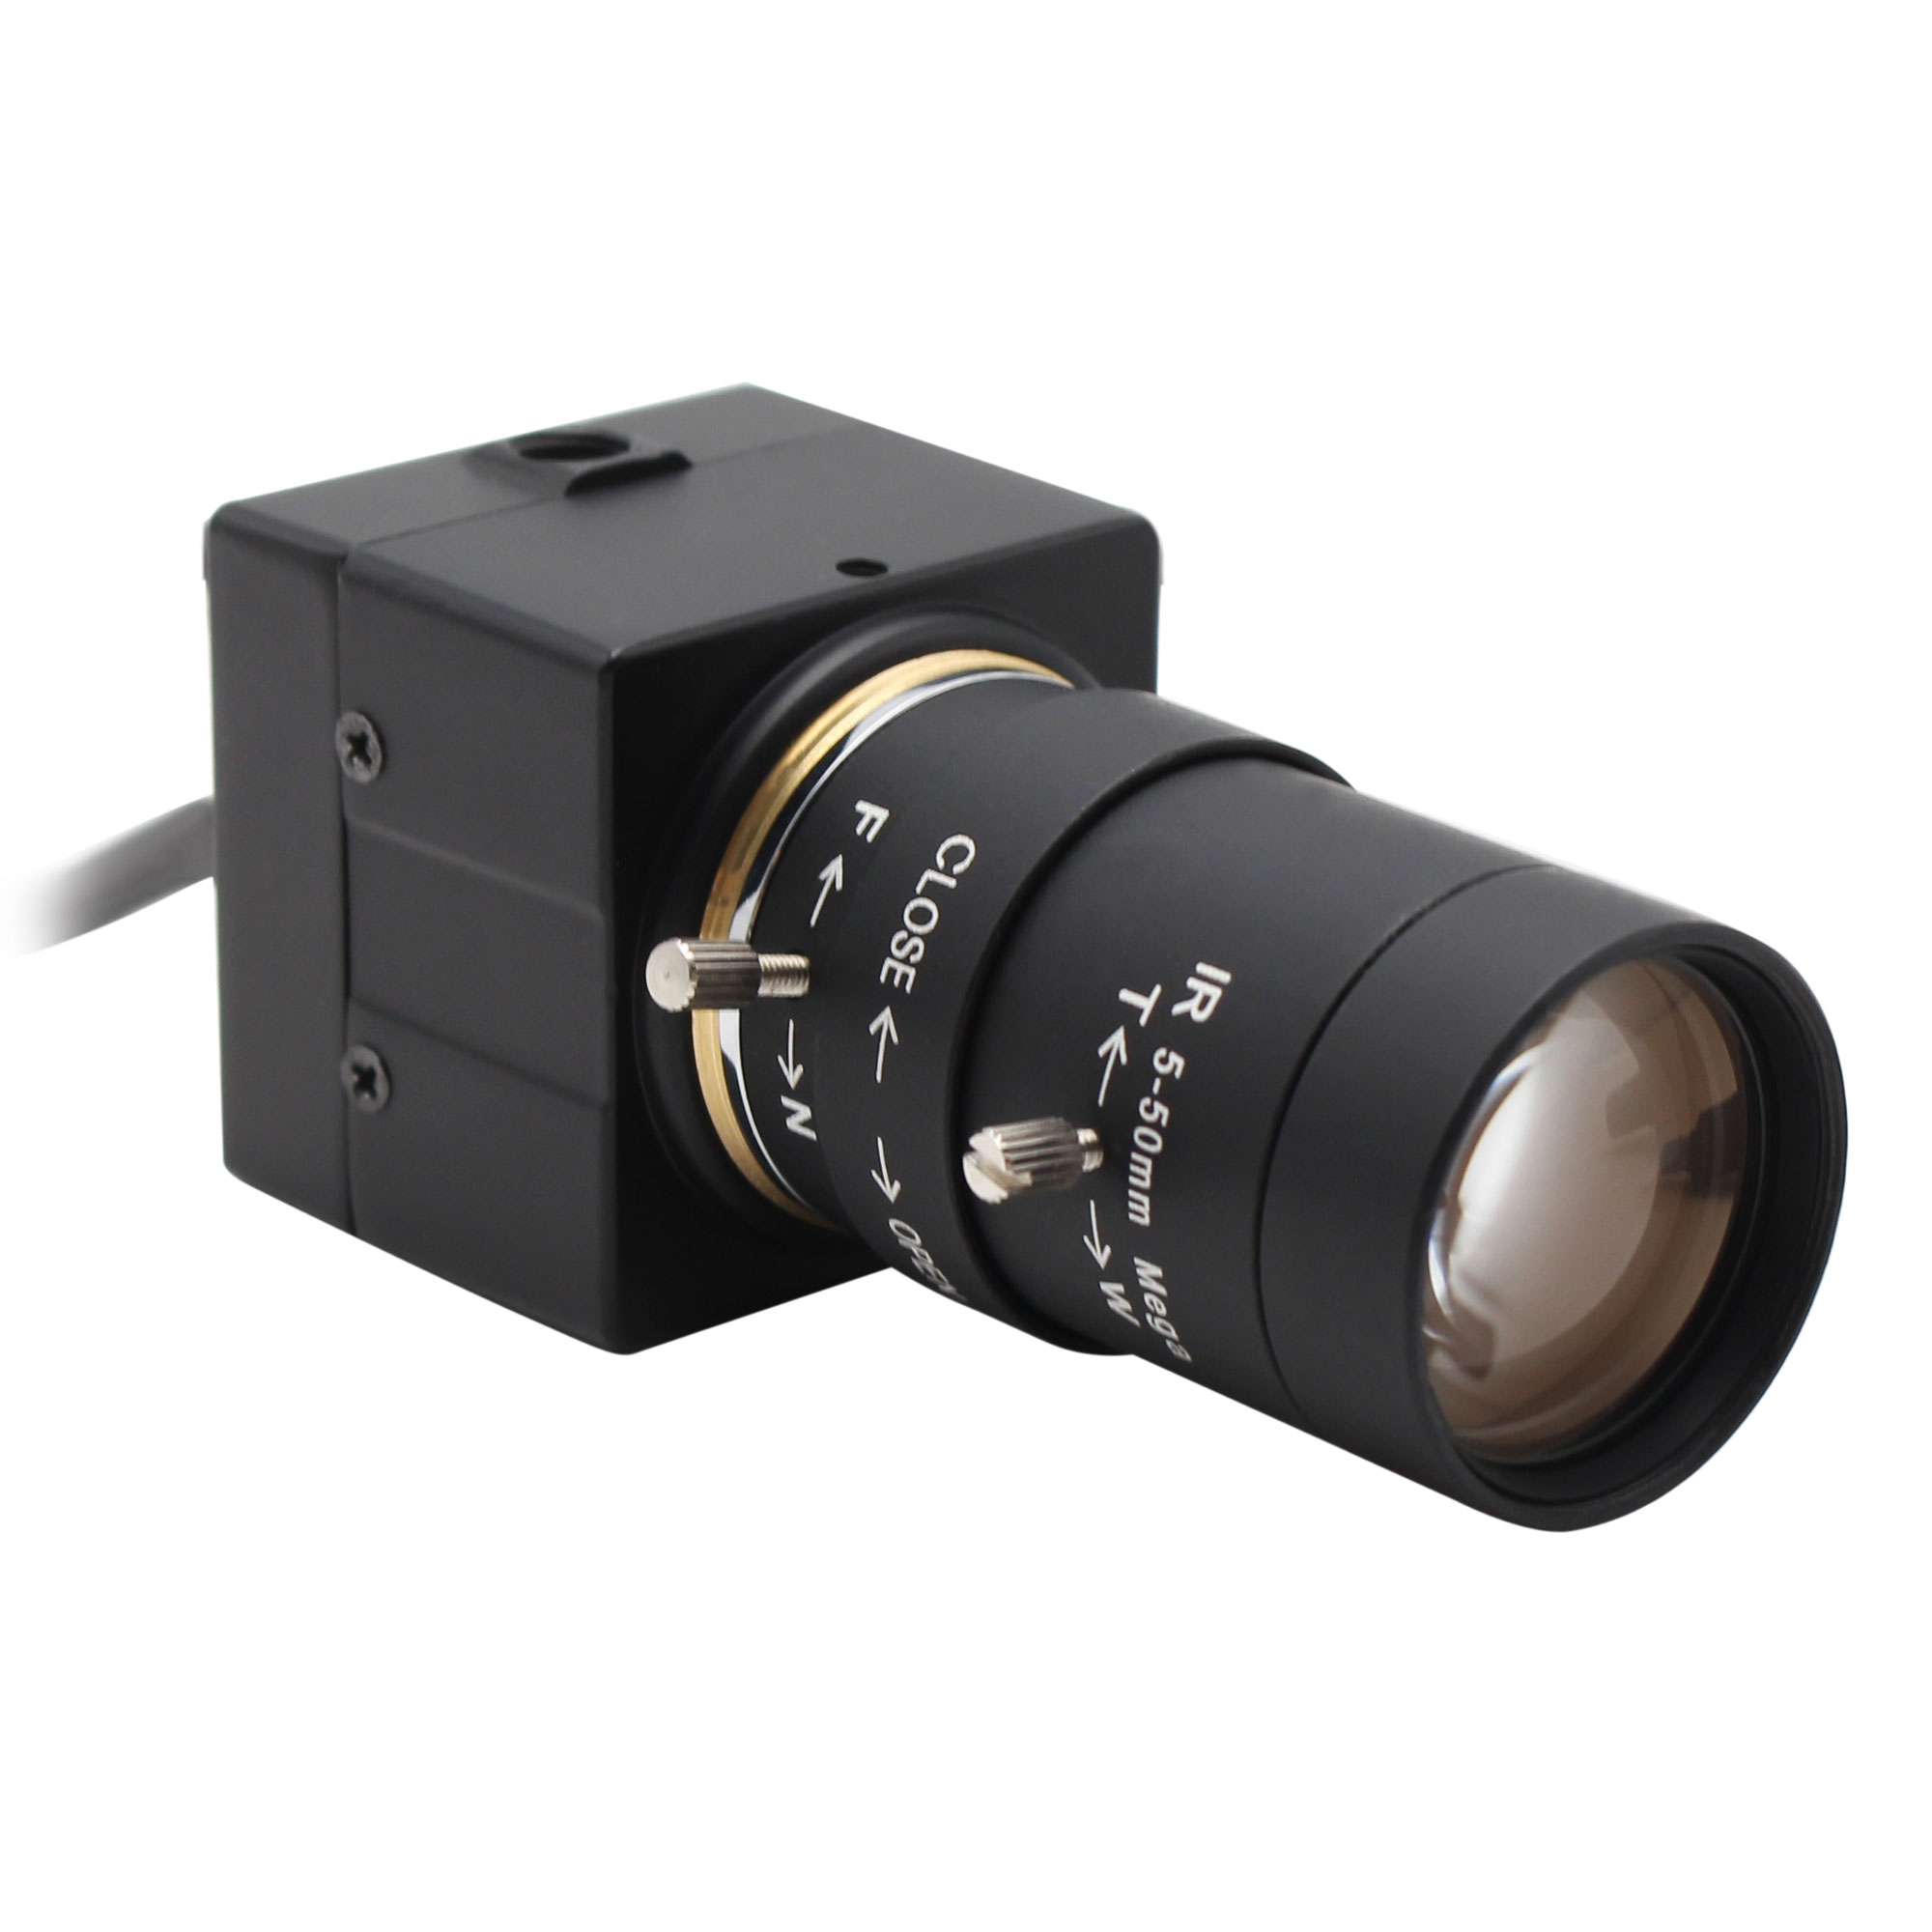 1.3MP H.264 low light zoom camera